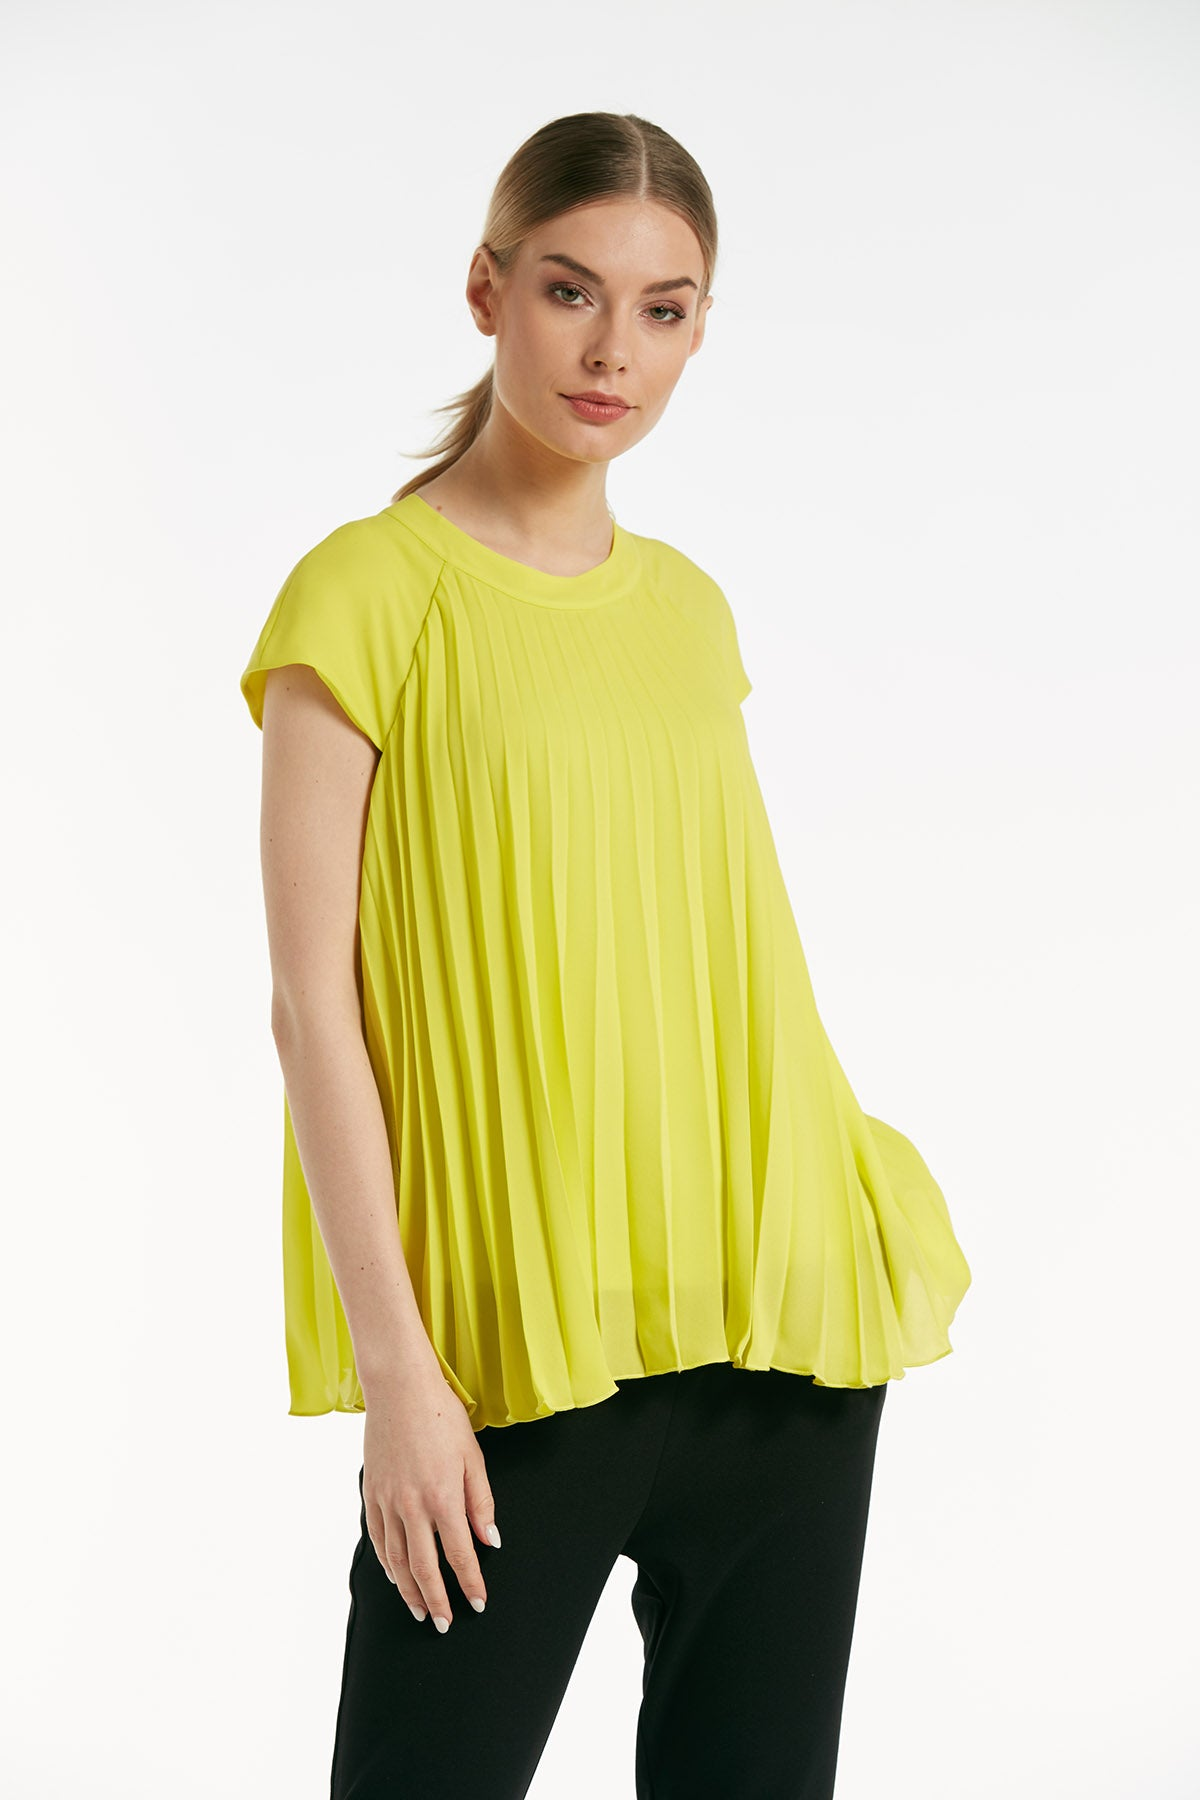 a90b4ffe32fd18 Short sleeves pleated top - 16128 – Explosion London